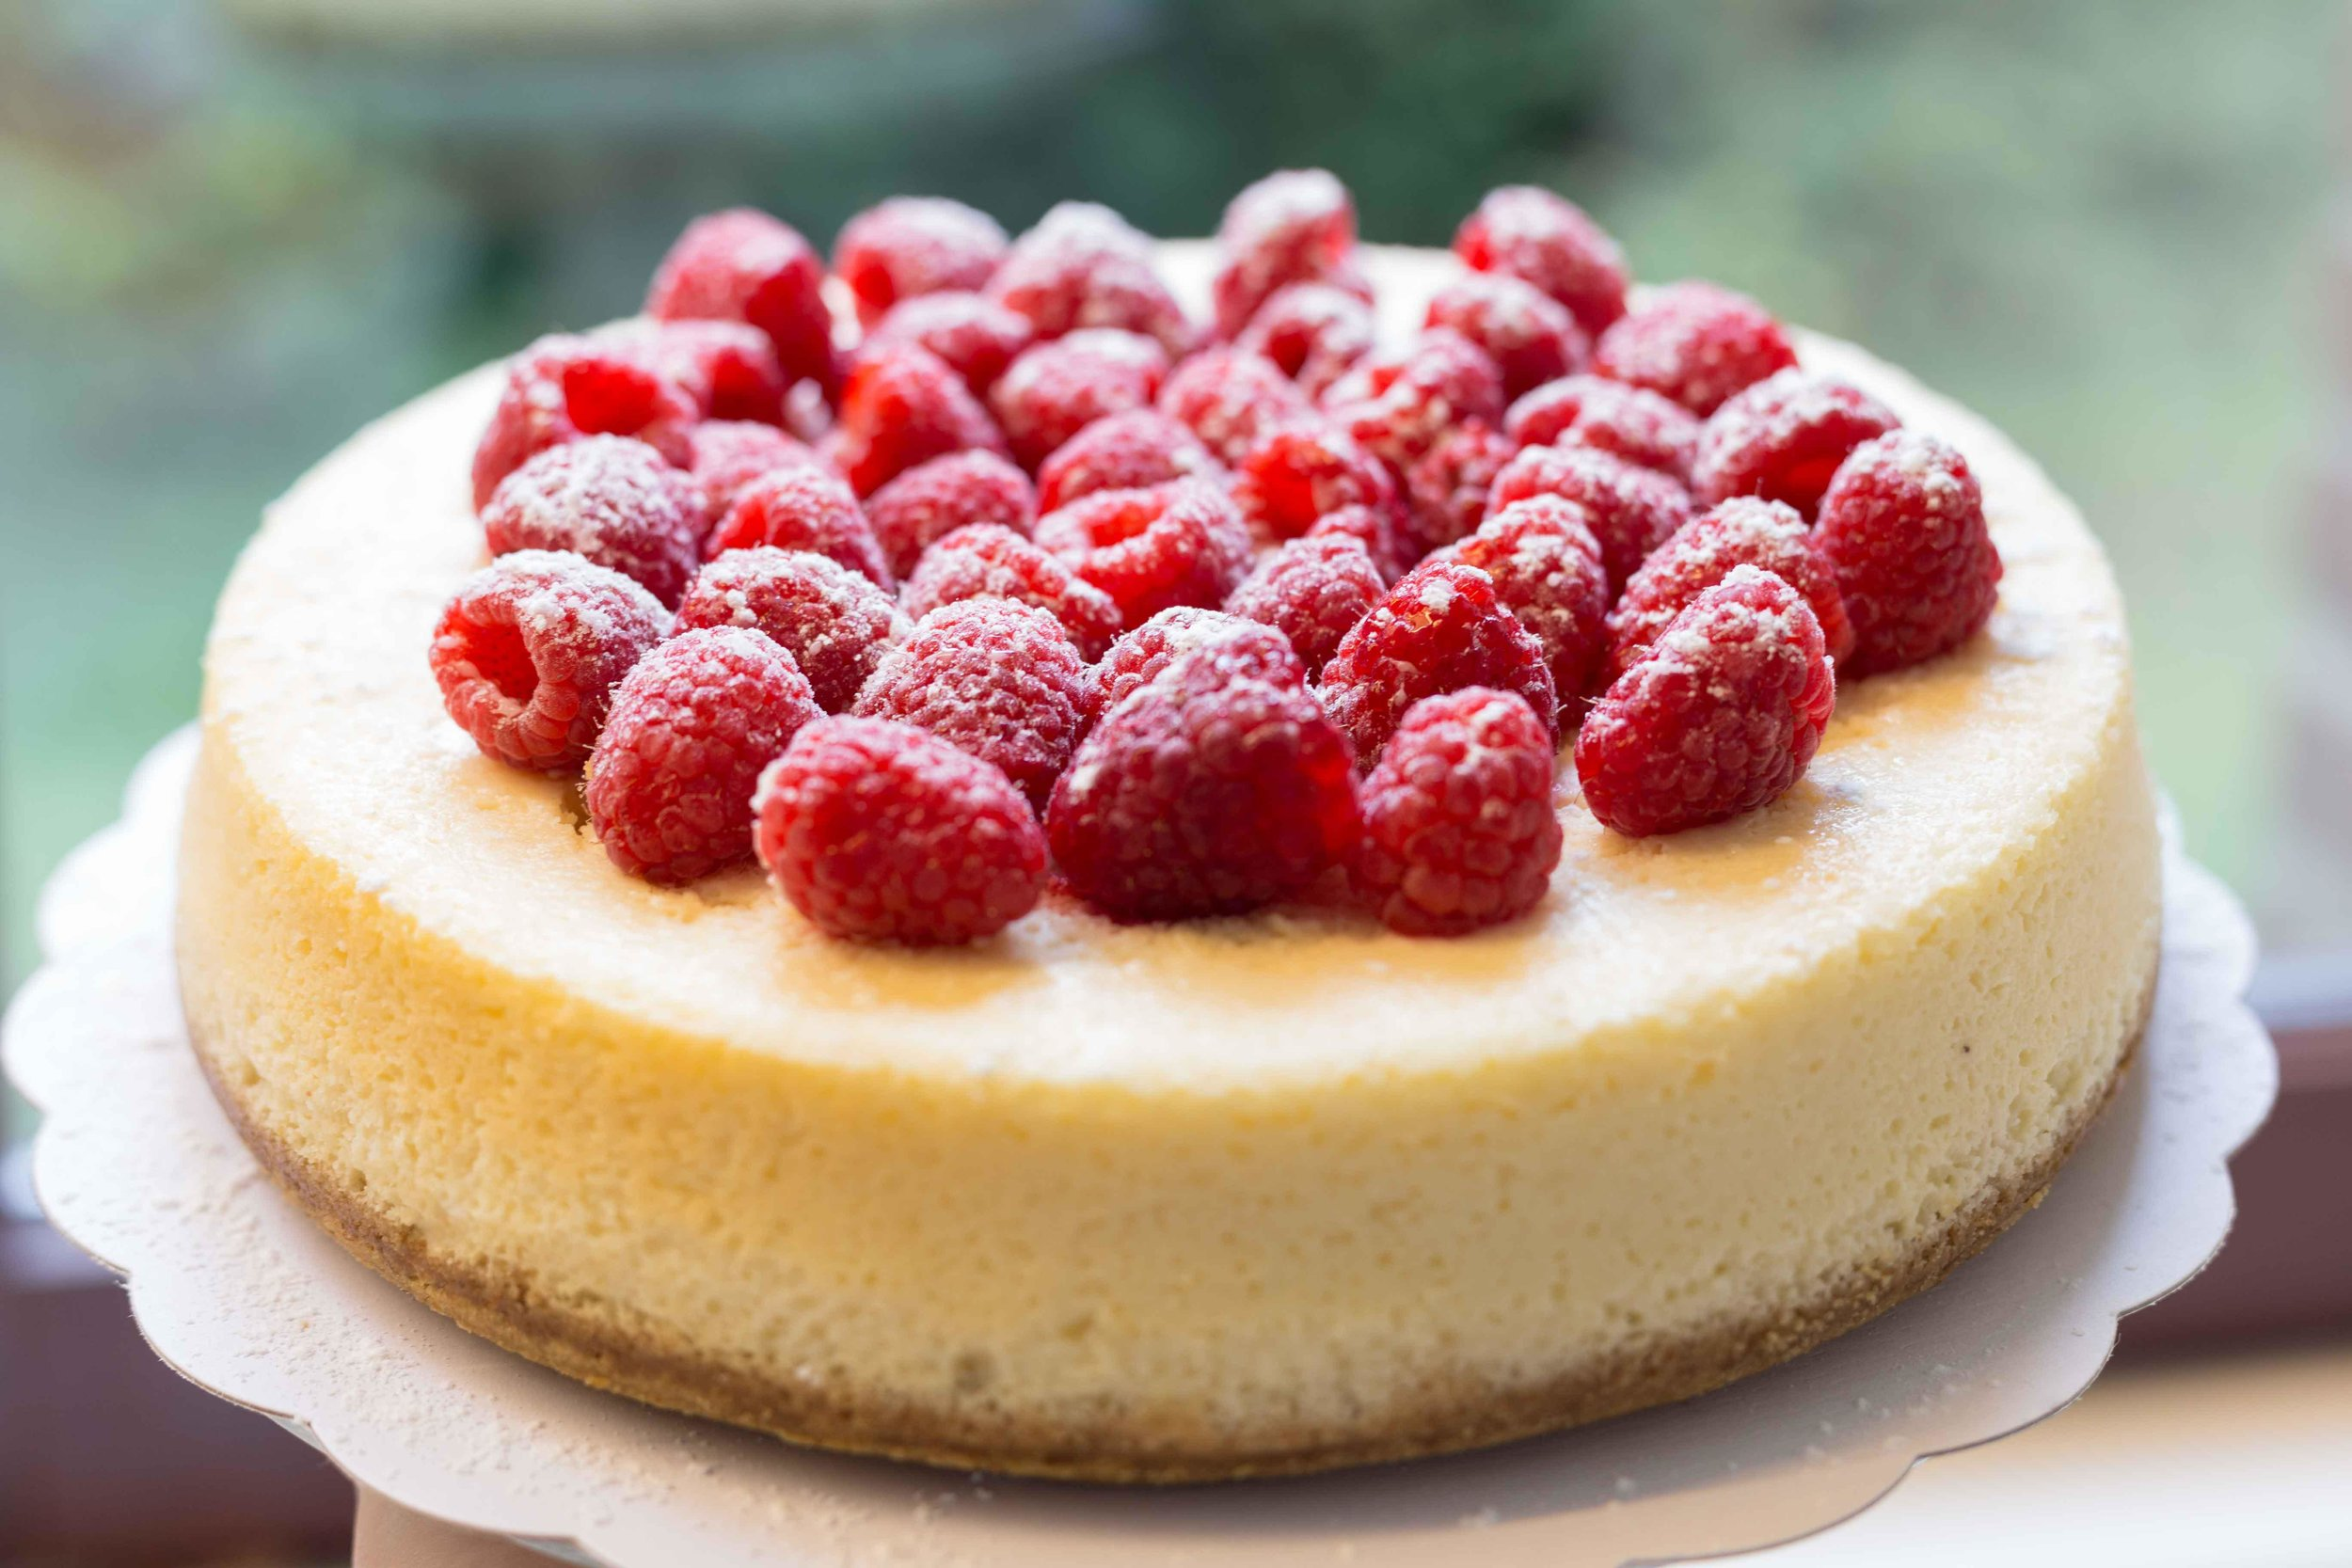 Baked Lemon and Raspberry Cheese Cake